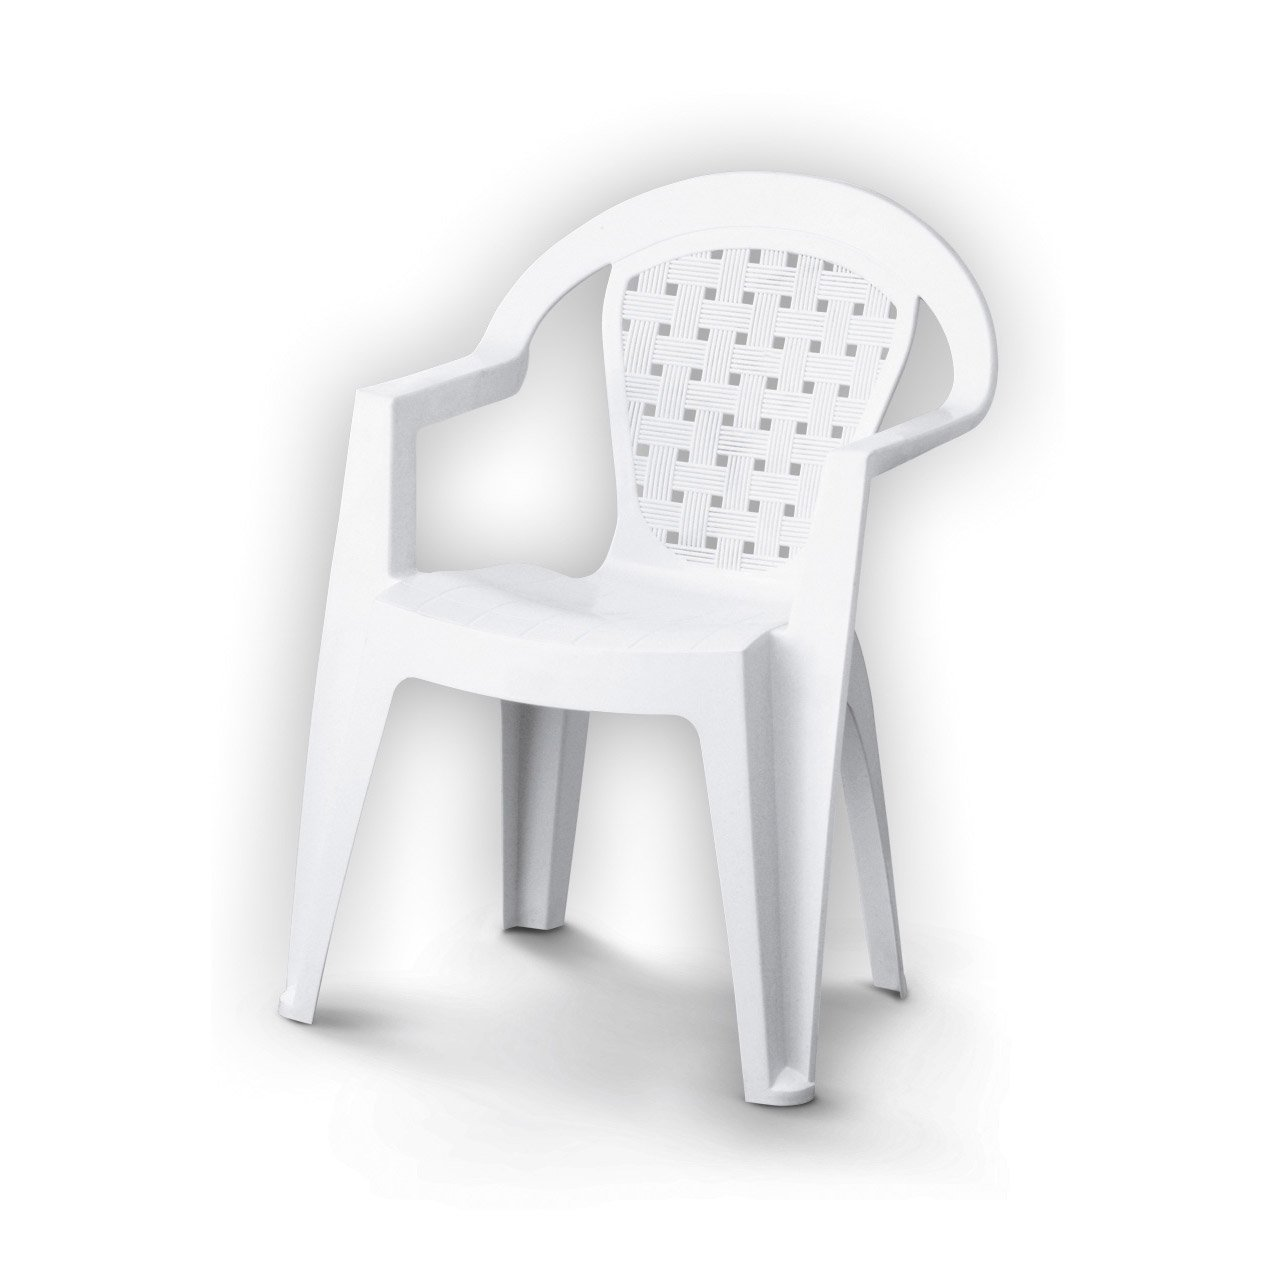 Chaise plastique blanche design id es de d coration for Chaise plastique design